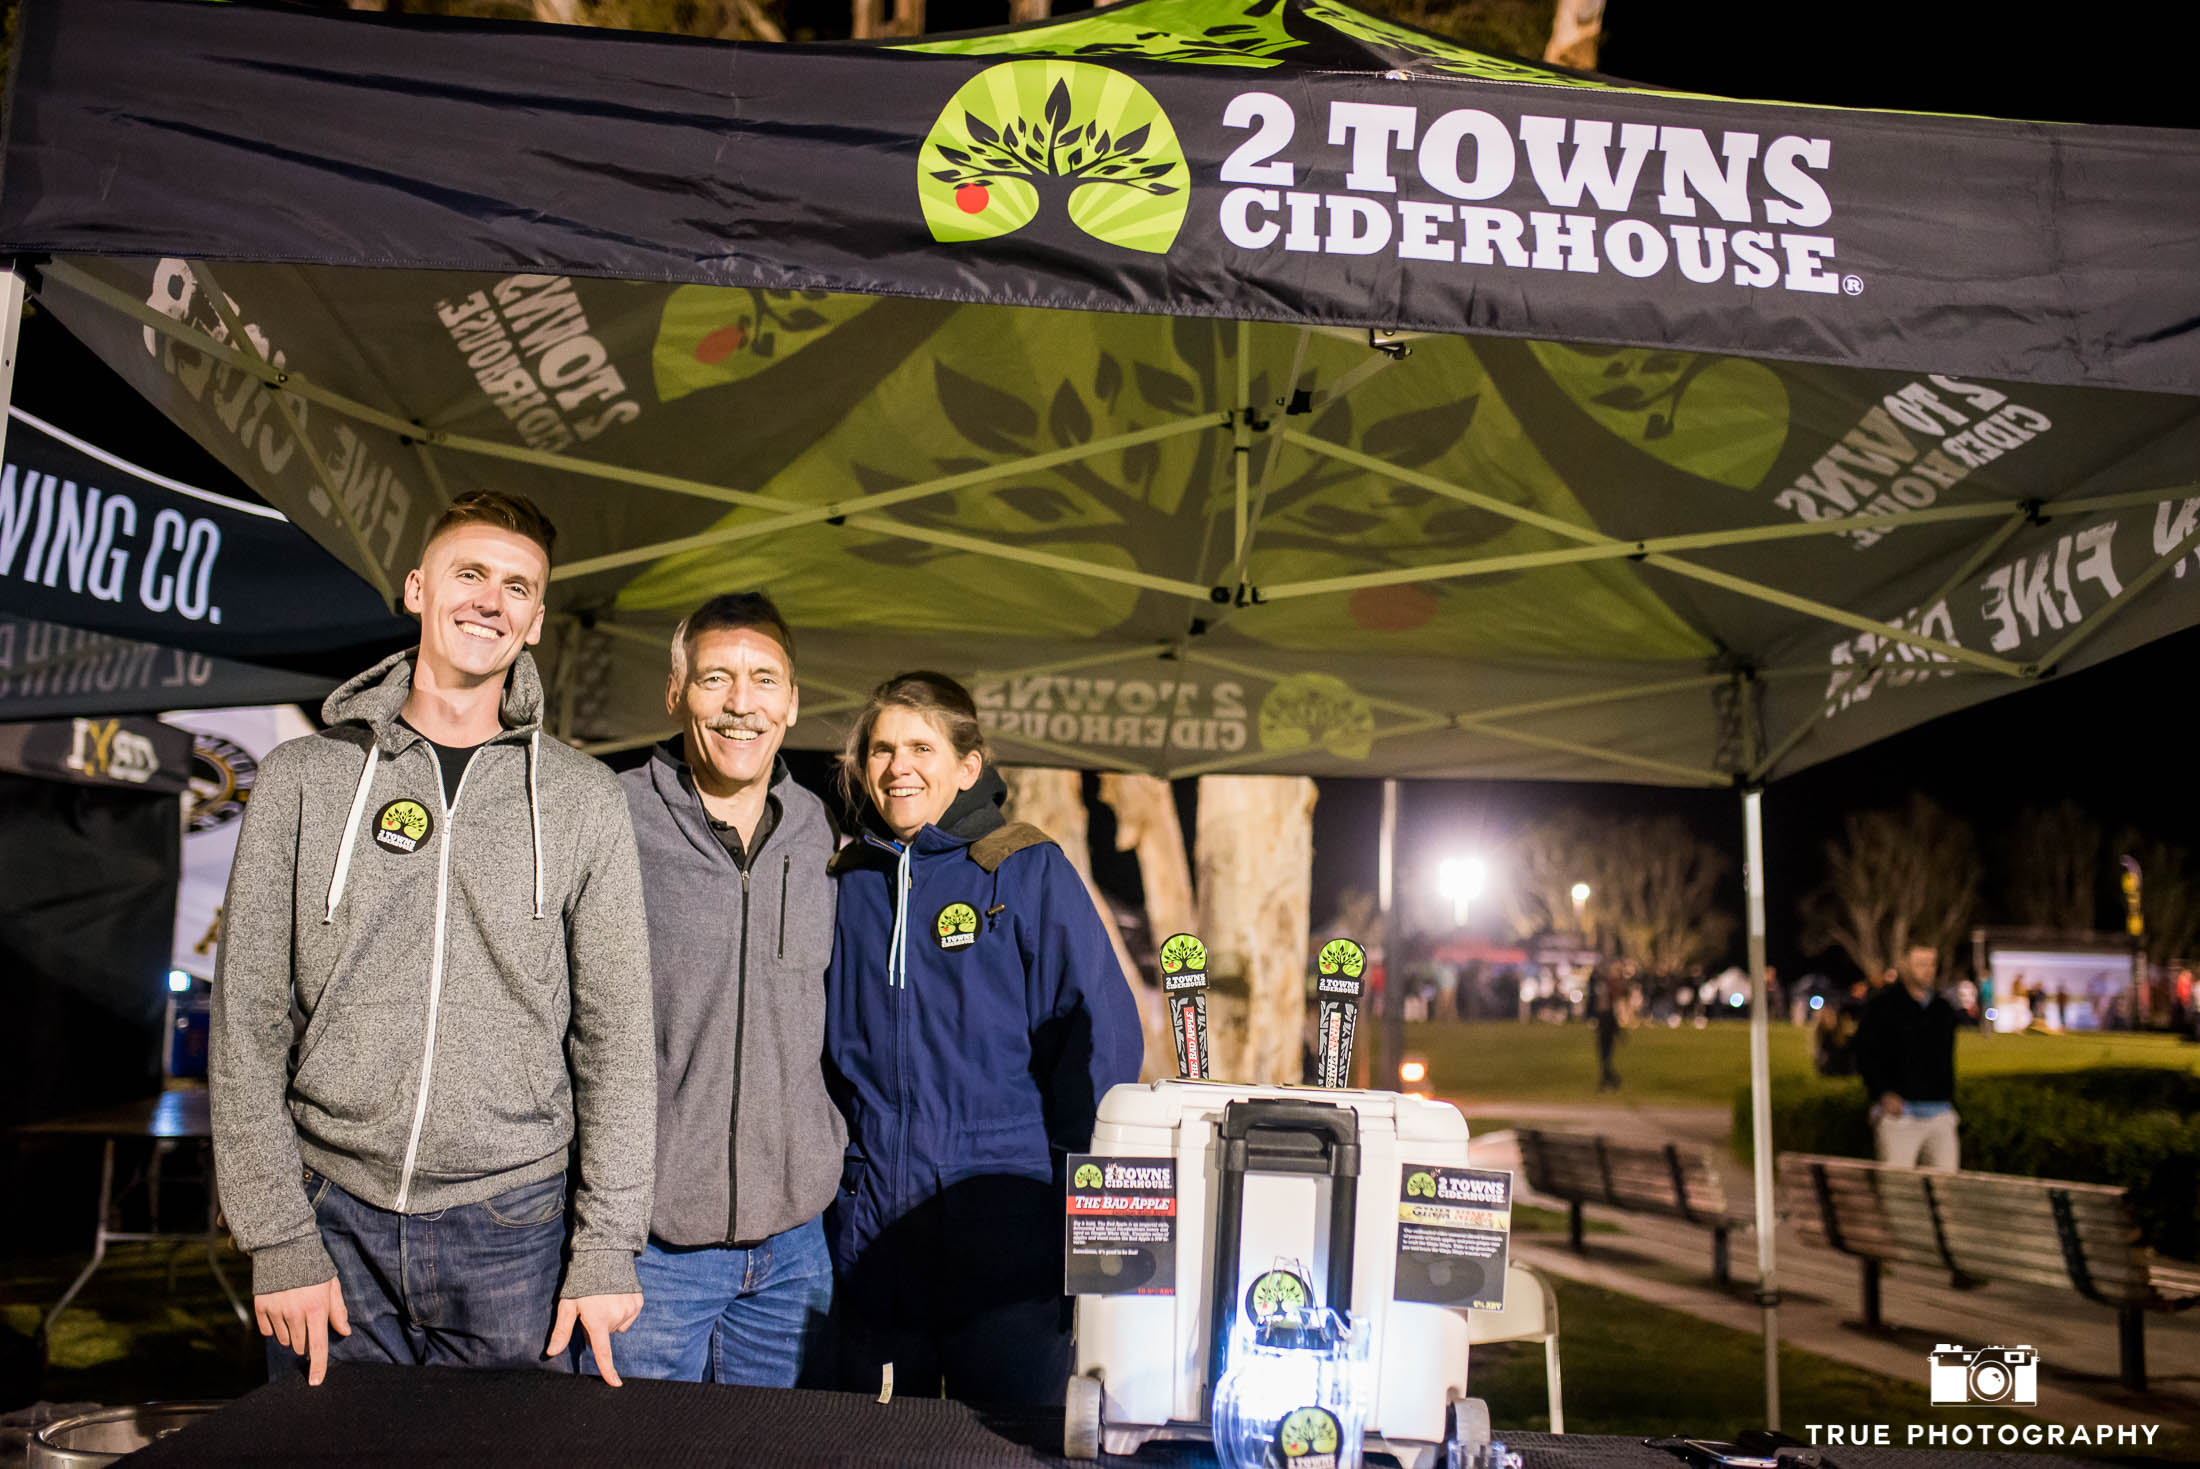 2 Towns Ciderhouse brewers pose for photo at booth during Best Coast Beer Fest